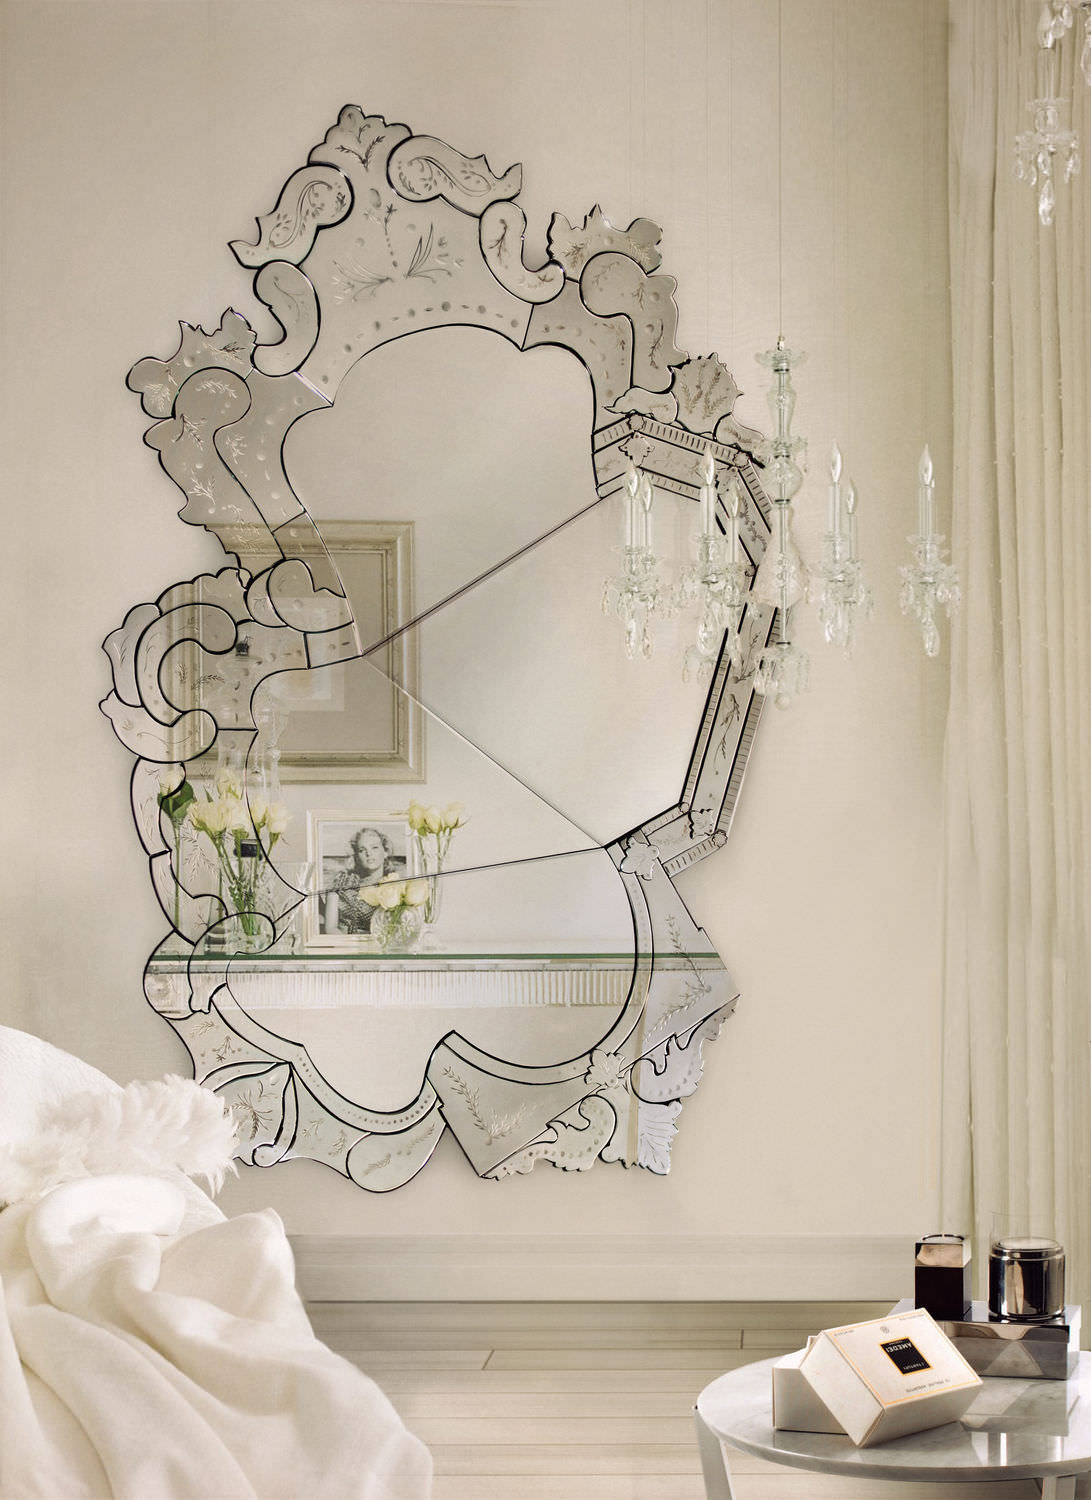 Stunning Wall mirrors Décor Ideas for Your Home7